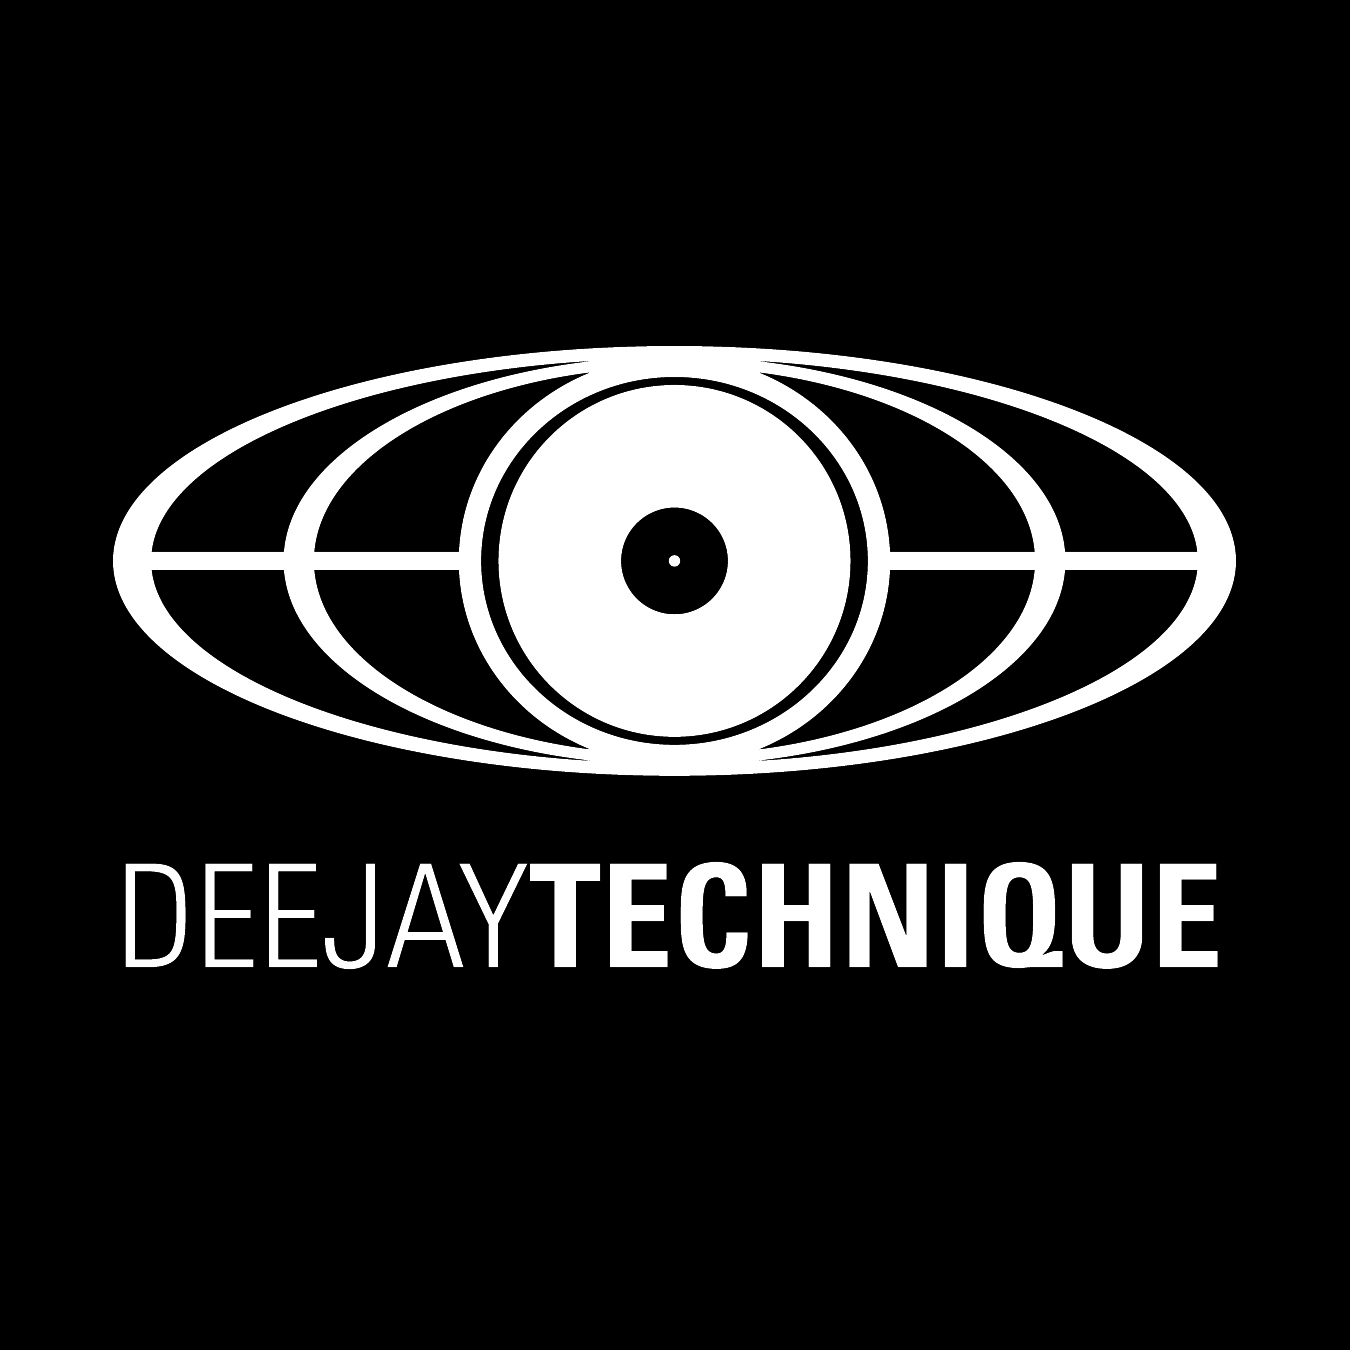 Deejay Technique